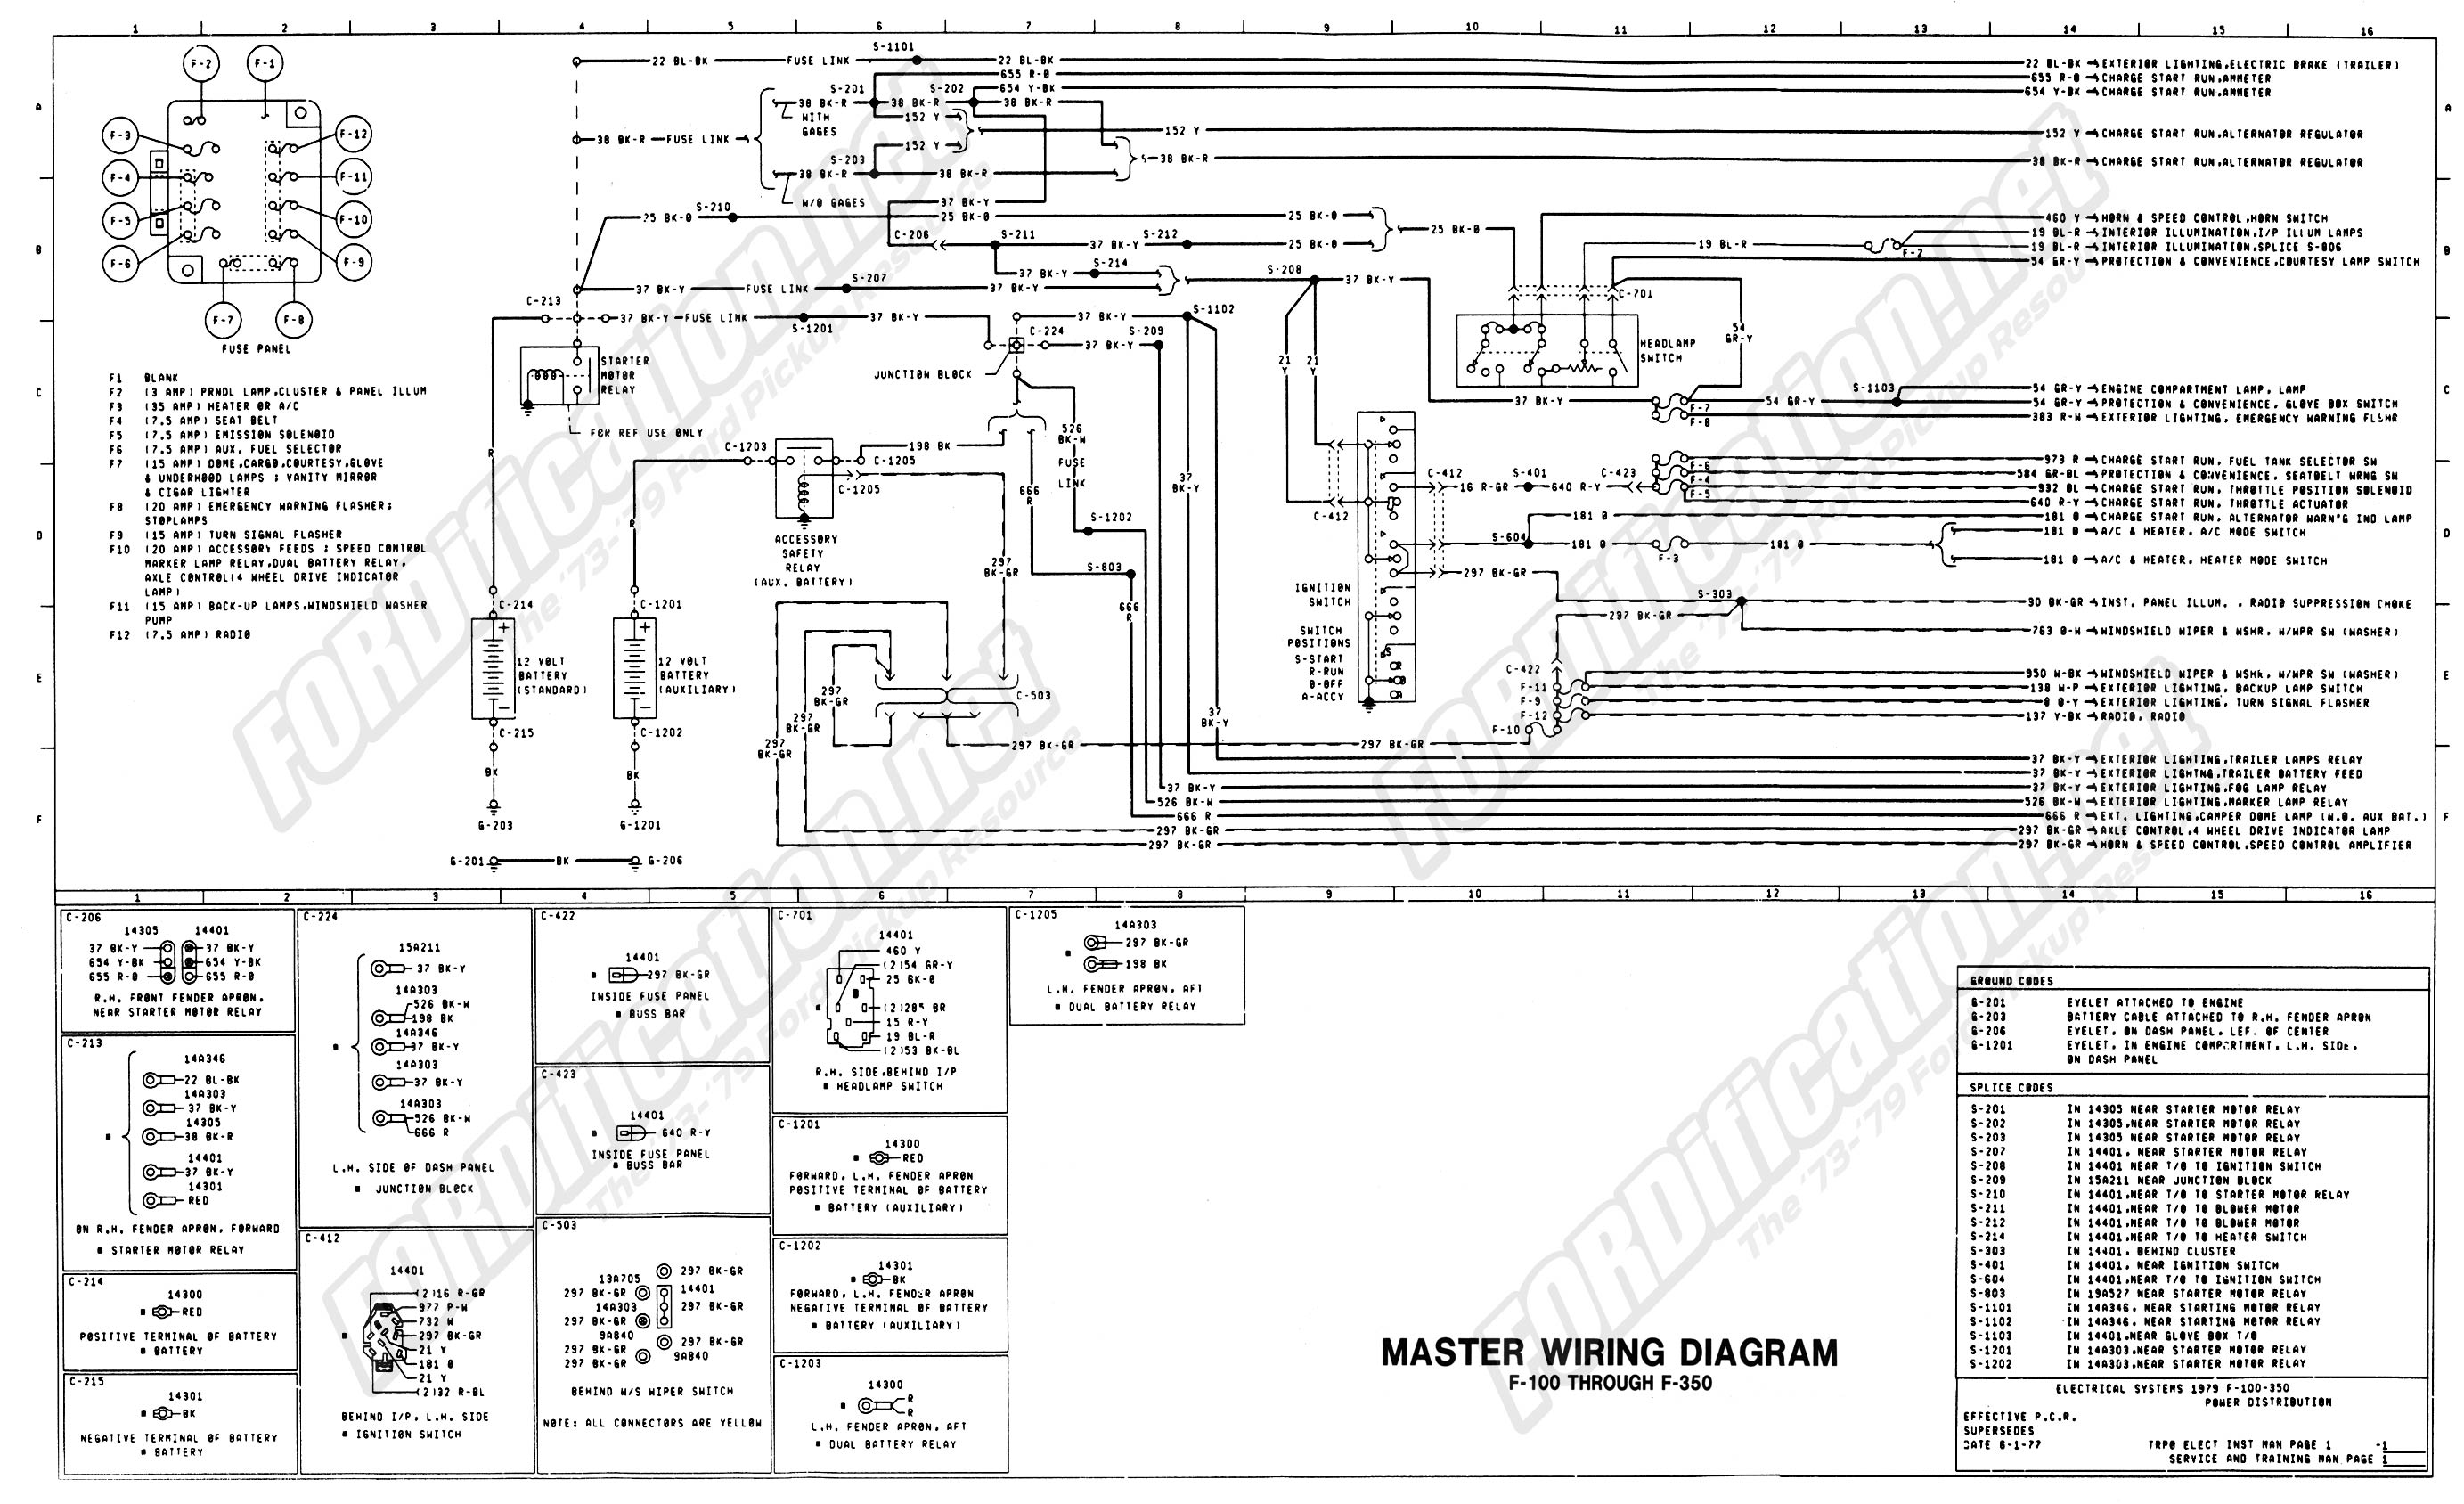 wiring_79master_1of9 1973 1979 ford truck wiring diagrams & schematics fordification net 1977 Ford F100 Custom at readyjetset.co